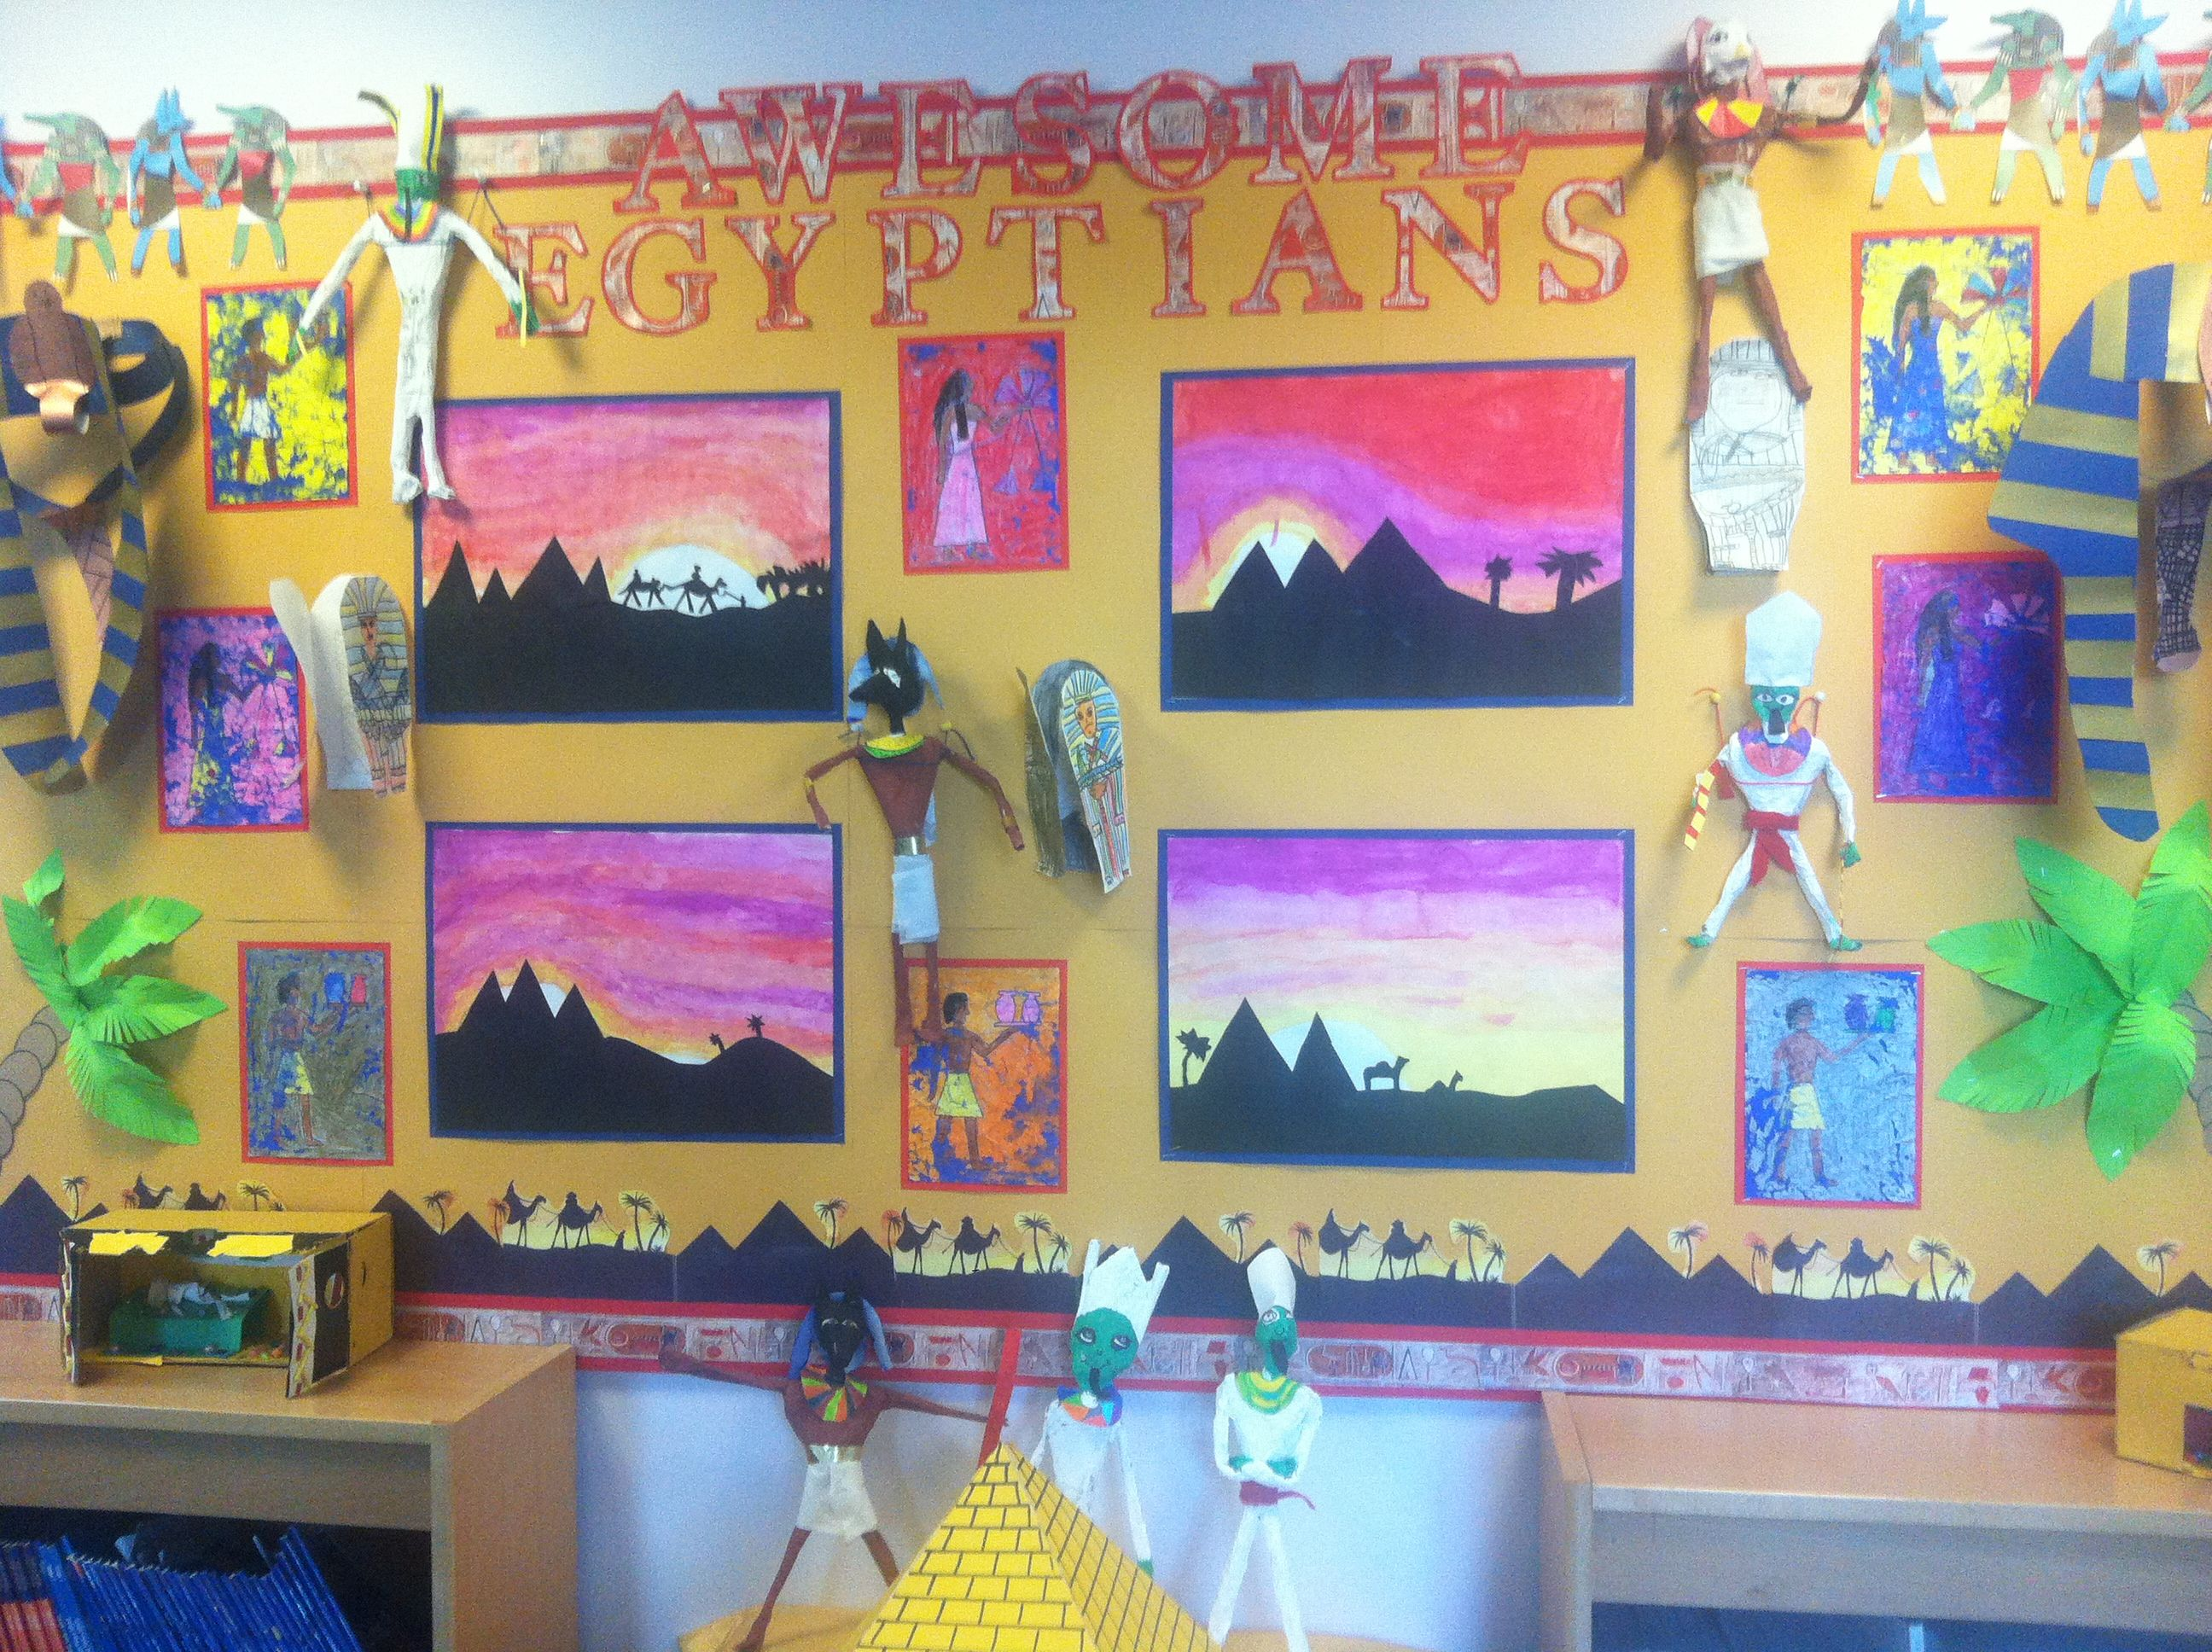 Year 3 Egyptians Display